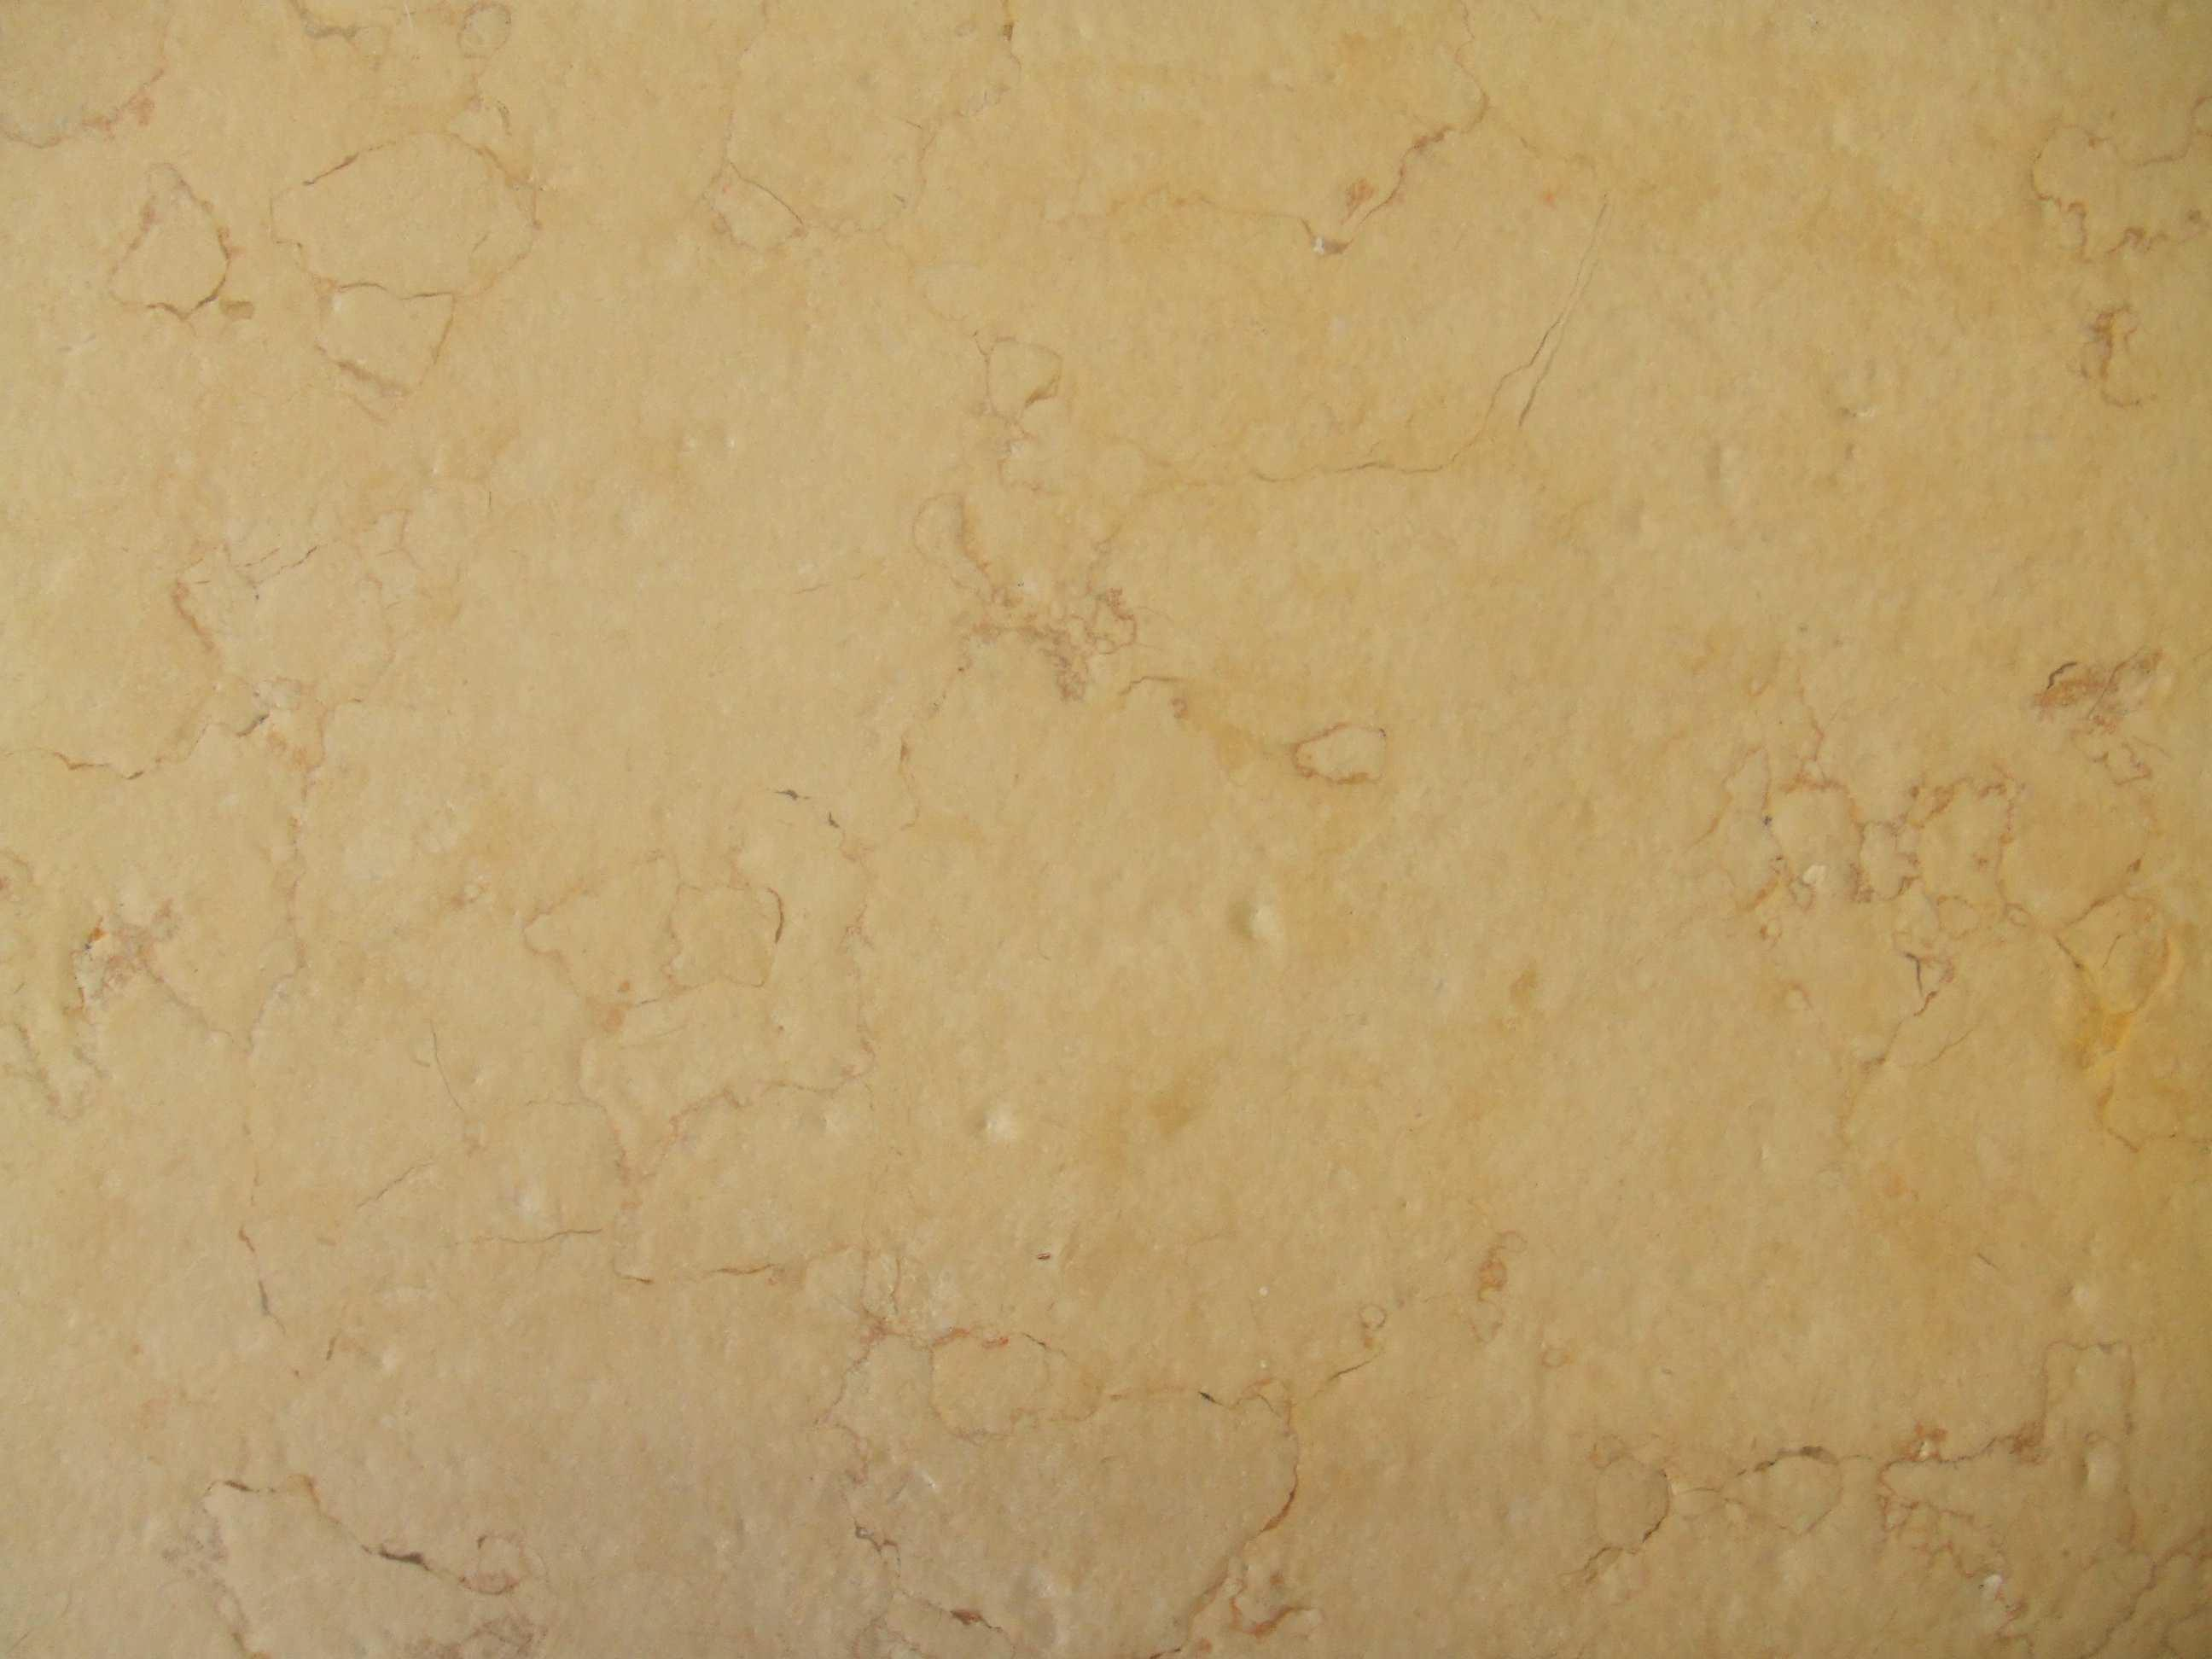 Giallo Atlantide Limestone Tiles, Slabs and Countertops - Yellow Limestone from Egypt stones